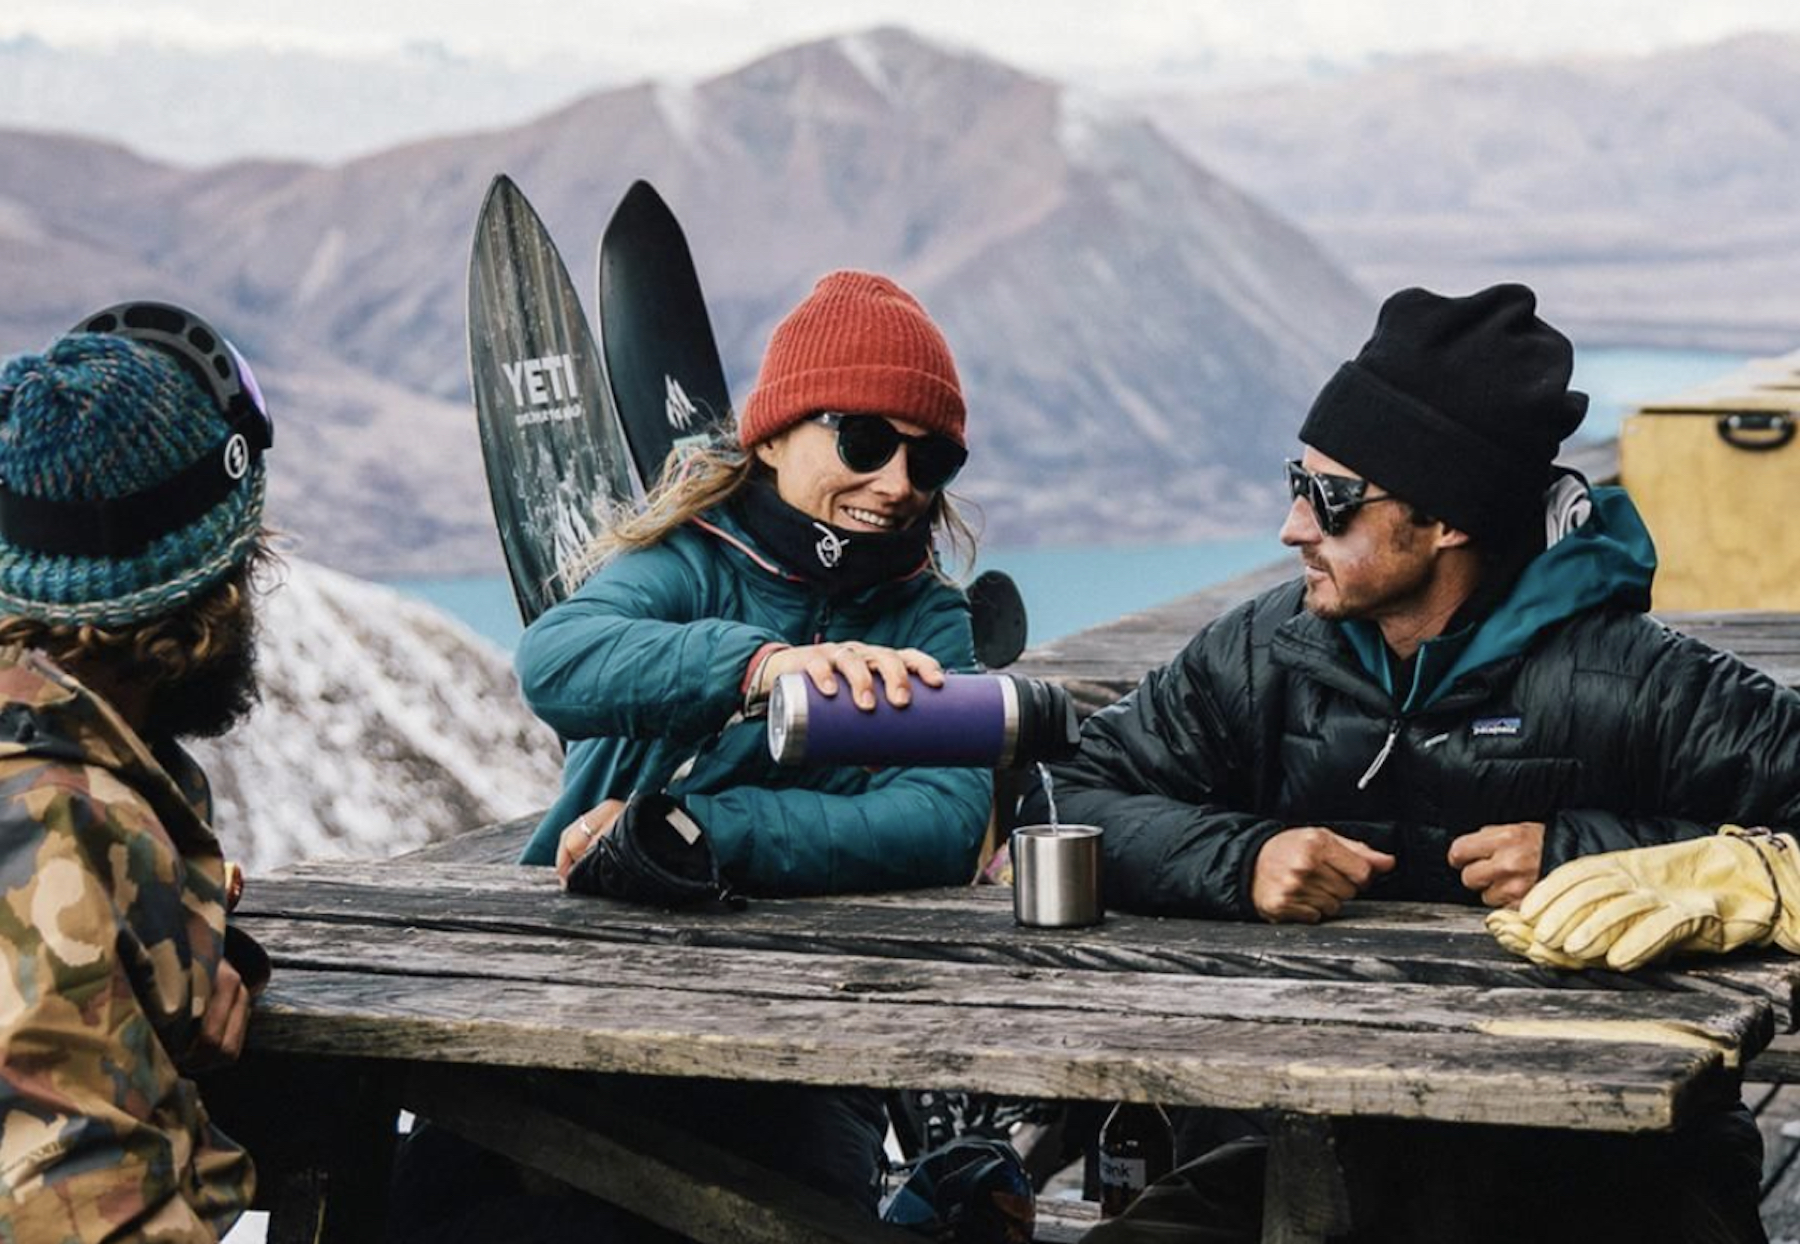 3 skiers in sunglasses looking over mountains, one pouring drink from purple YETI bottle